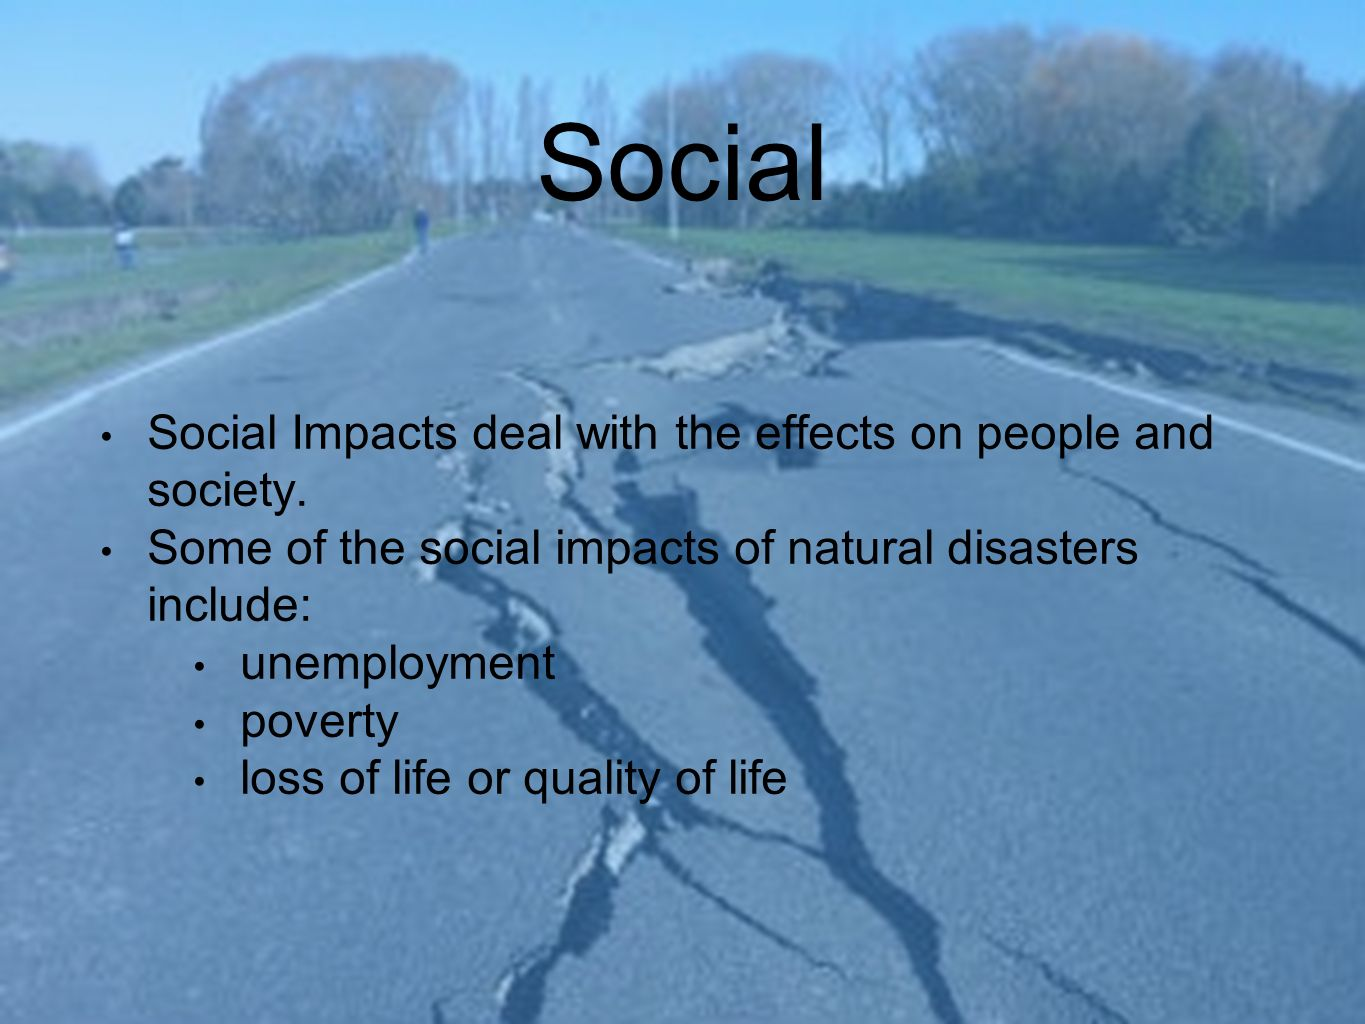 impact of unemployment on society Unemployment means being out of job or a situation where the individual is wiling to work but has none this article brings and discusses the main issues/effects of the unemployment on our society and economy.